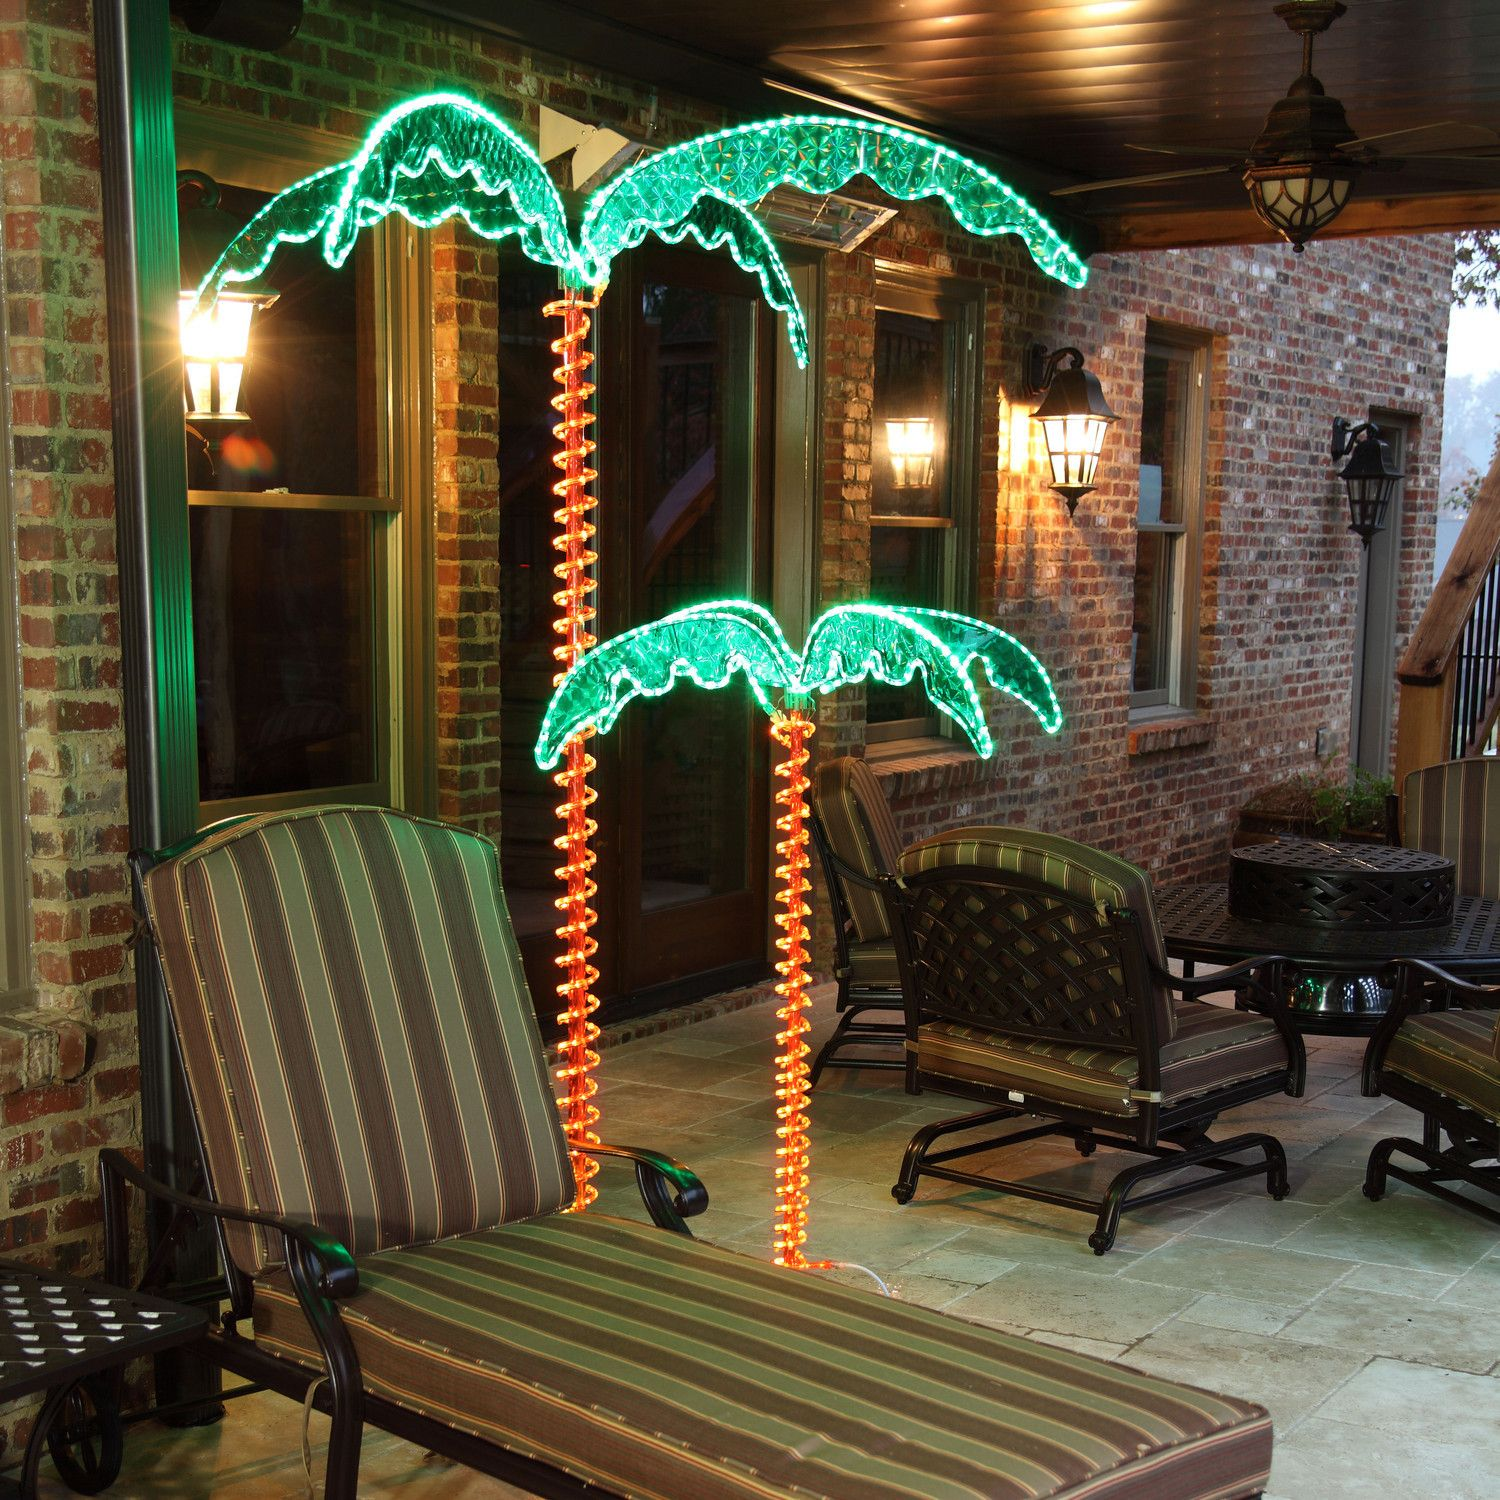 LED Rope Light Palm Tree: Lighted Palm Tree Uses LED Rope Light To Cast A  Bright And Long Lasting Glow Over Your Deck, Man Cave, Or Poolside.